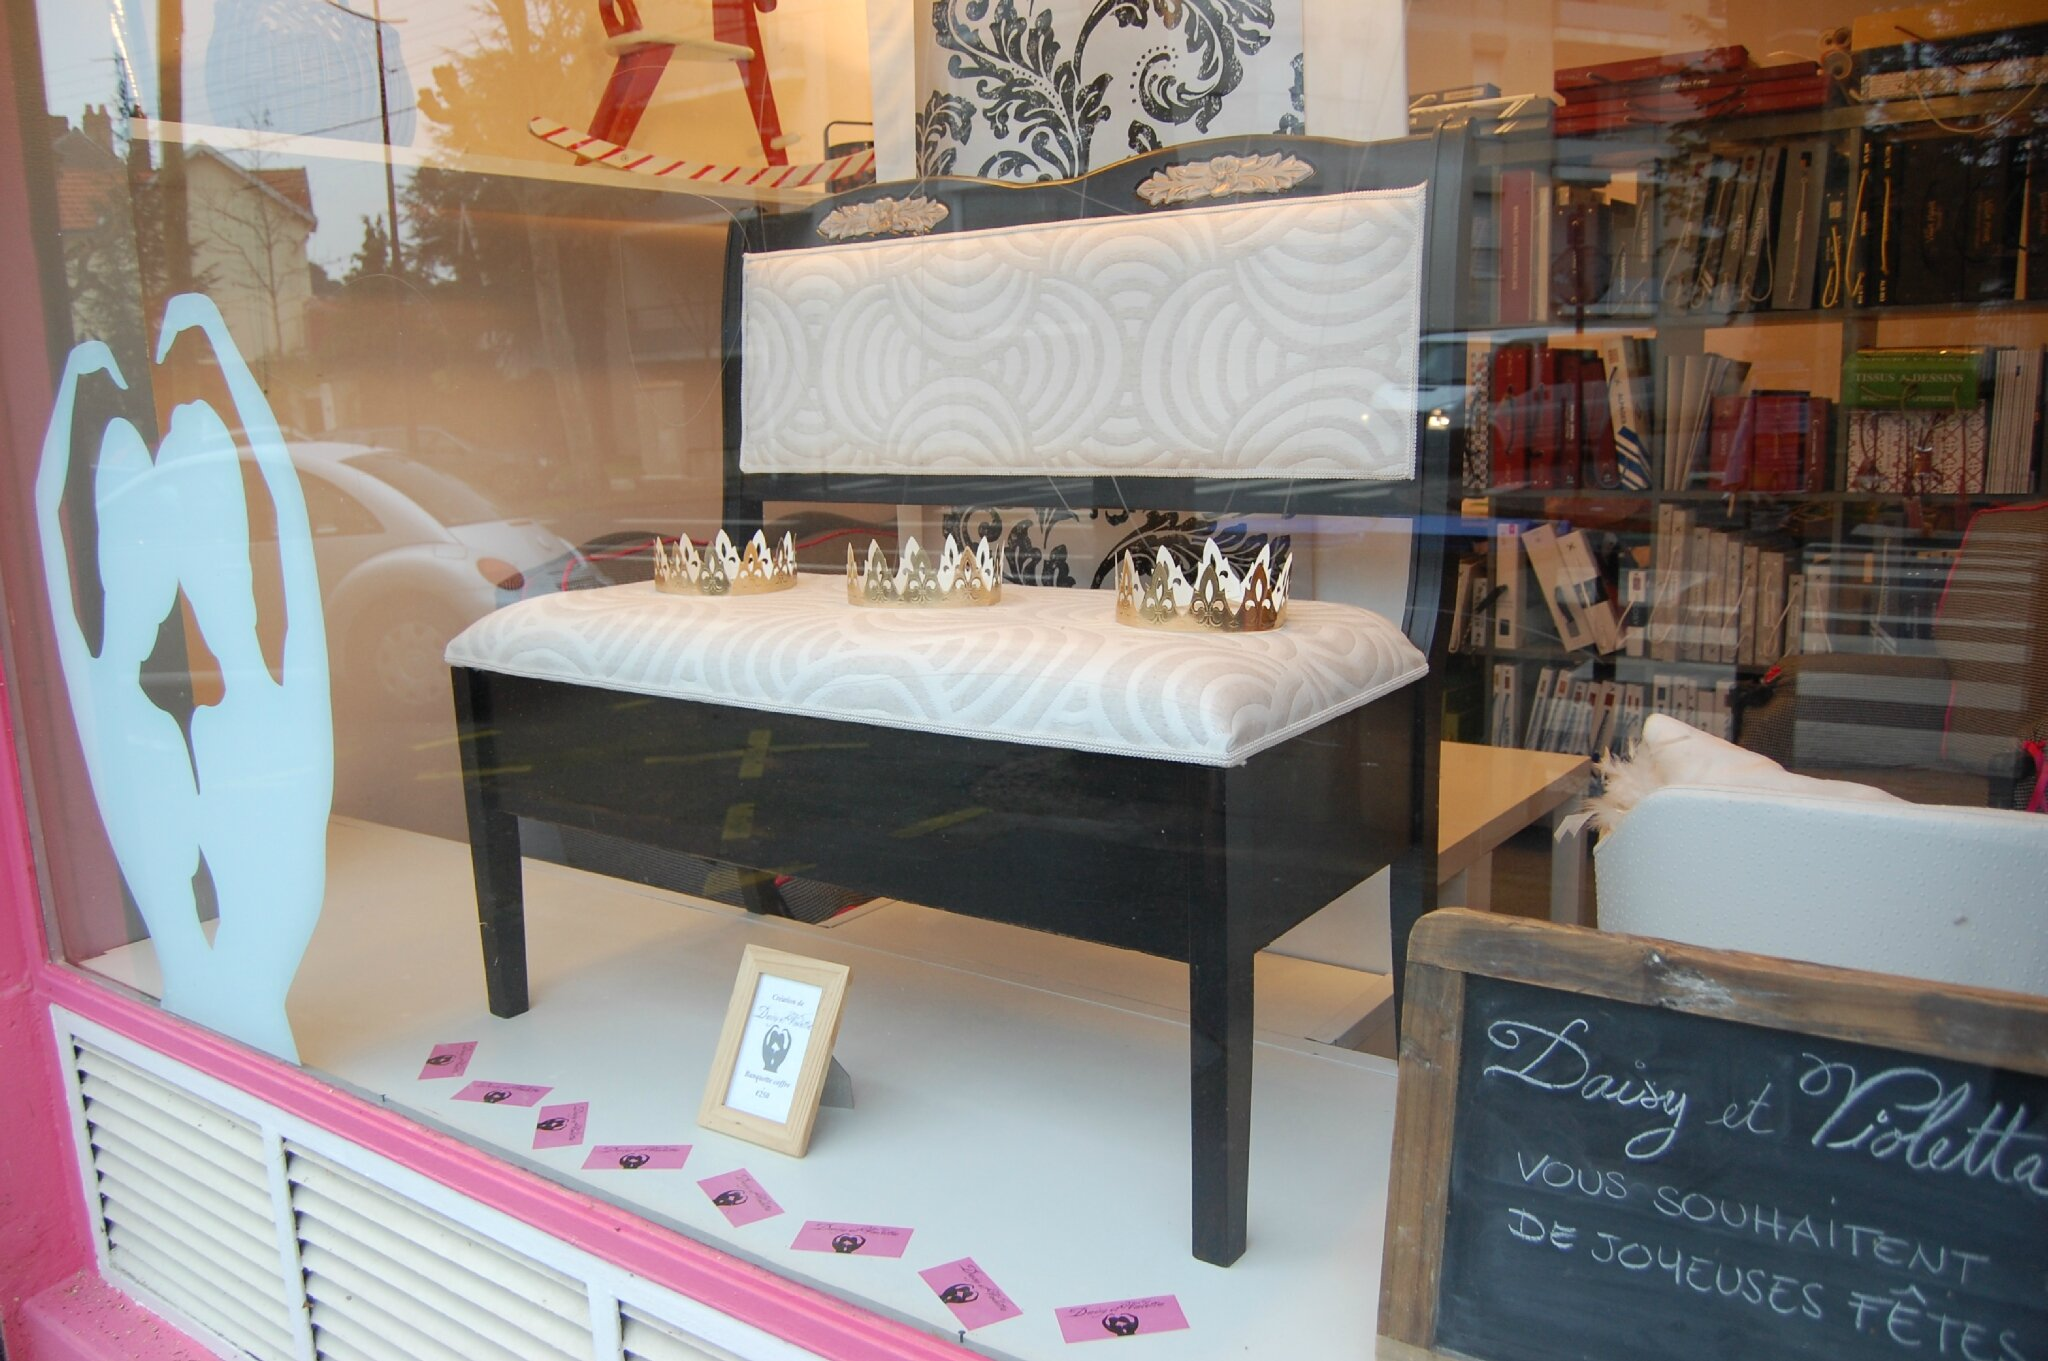 cr ations daisy et viloletta tapissier decorateur nantes. Black Bedroom Furniture Sets. Home Design Ideas